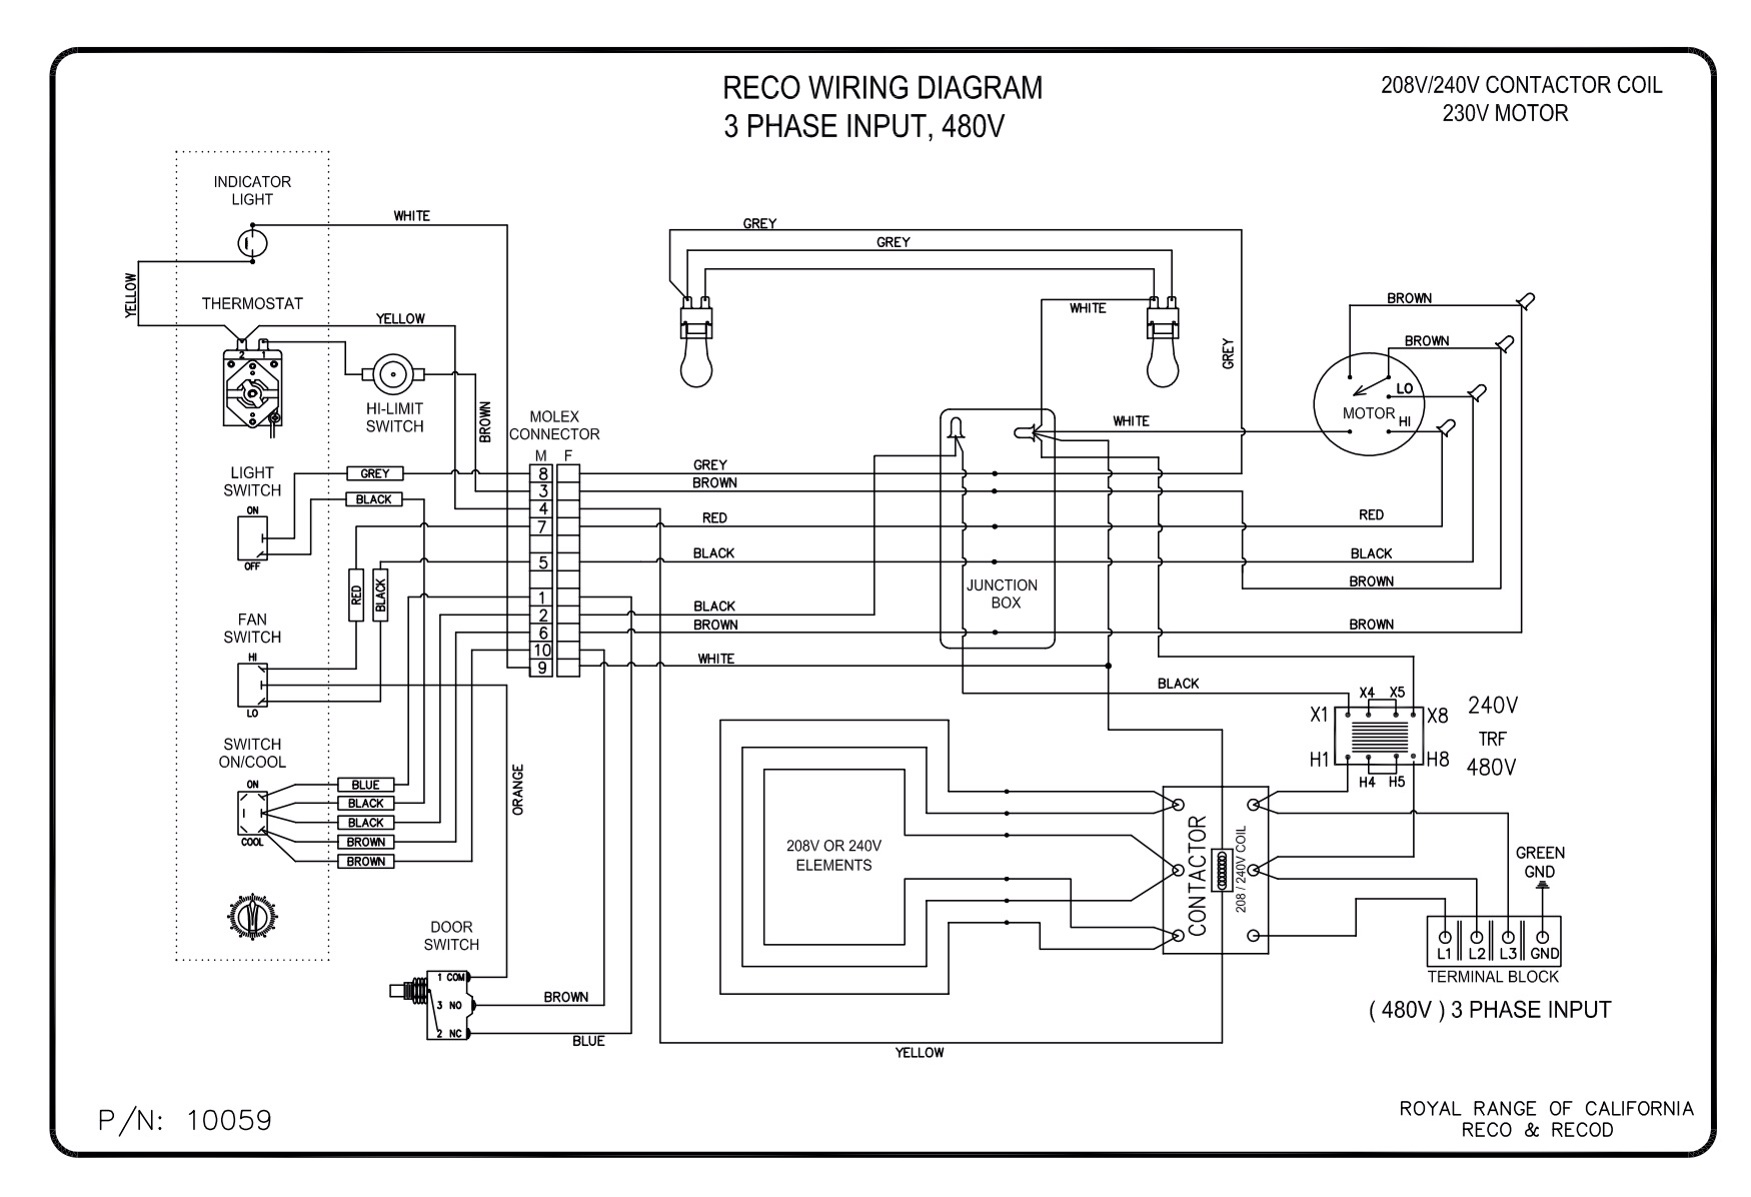 wiring connection diagram 1989 yamaha moto 4 350 diagrams royal range of california